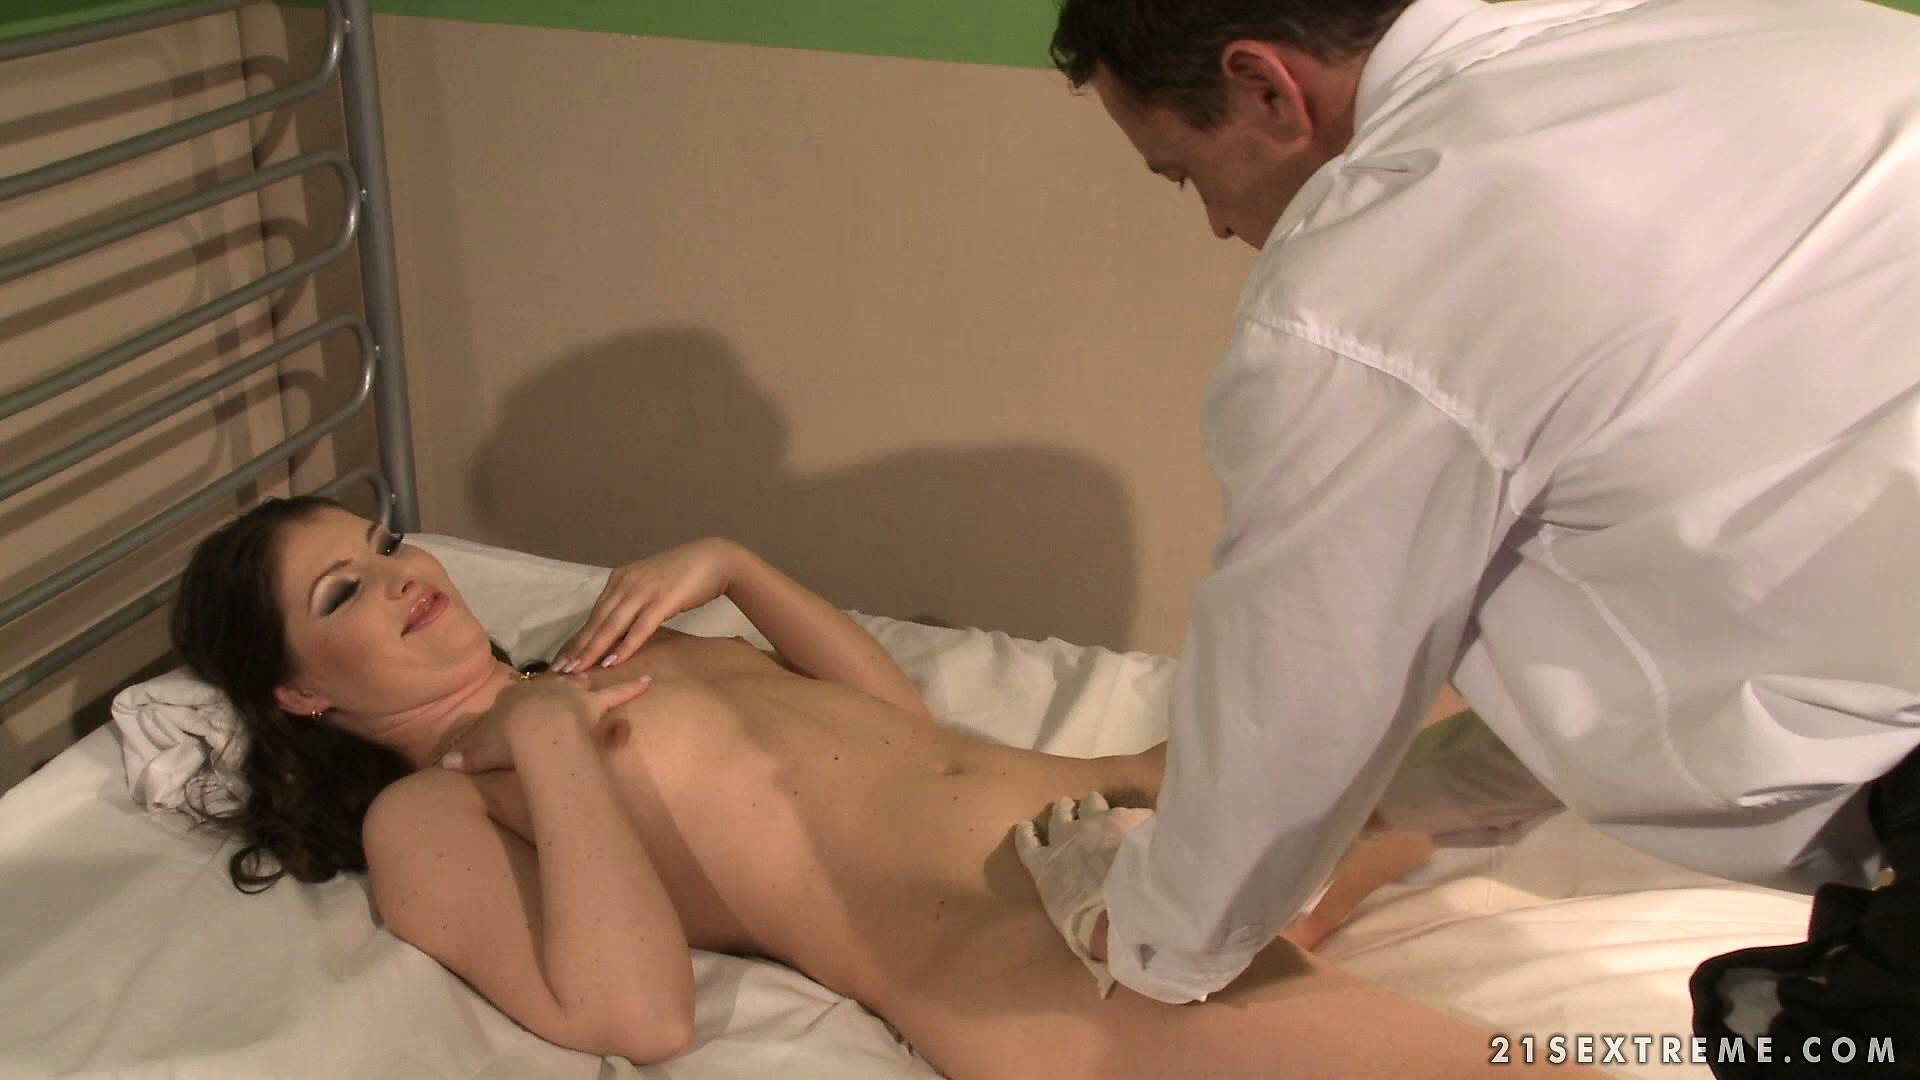 Porno Video of She Goes In For A Gyno Exam And He Starts Spanking Her As All Goes Wrong